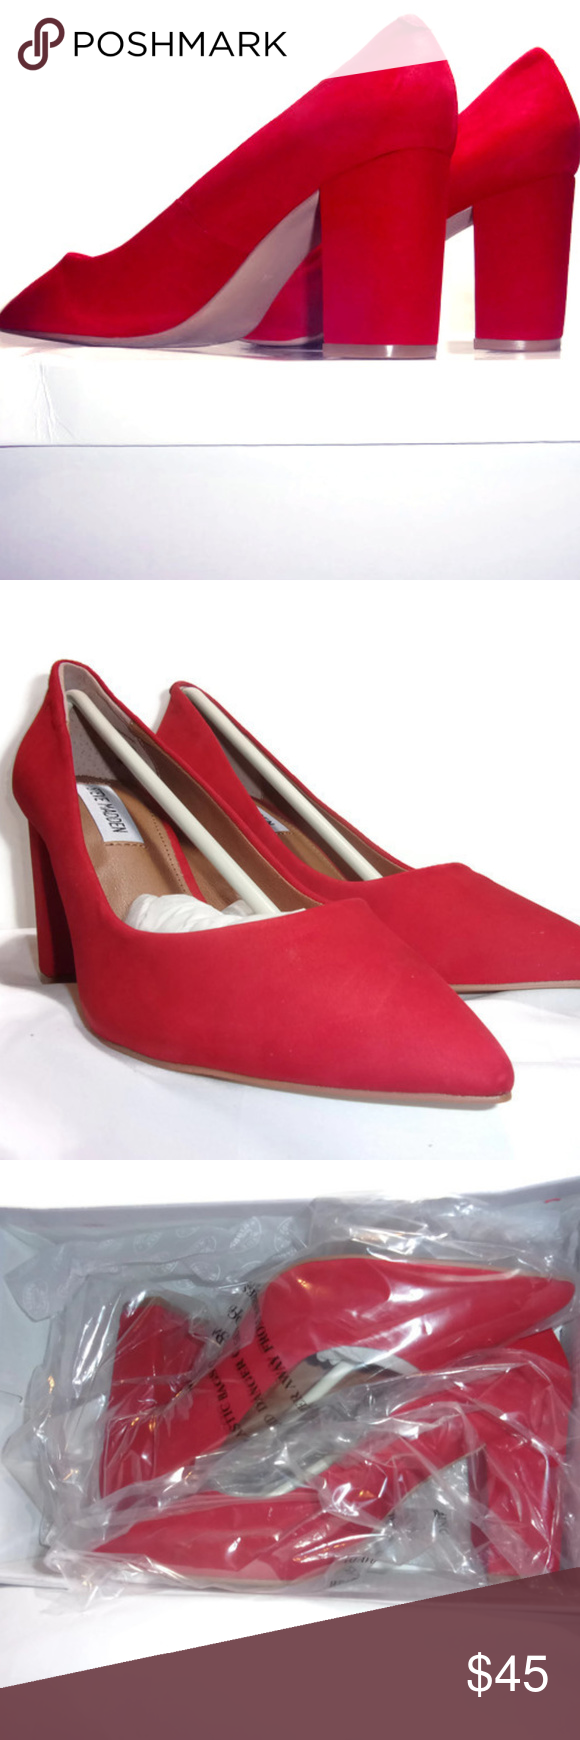 7d150bc7bcb Brand New Steve Madden Ashlyn Pump Red Nubuck 7M Brand New Never Worn  Exclusive Steve Madden Ashlyn Women s Pump Red Nubuck Leather Sz. 7M US.